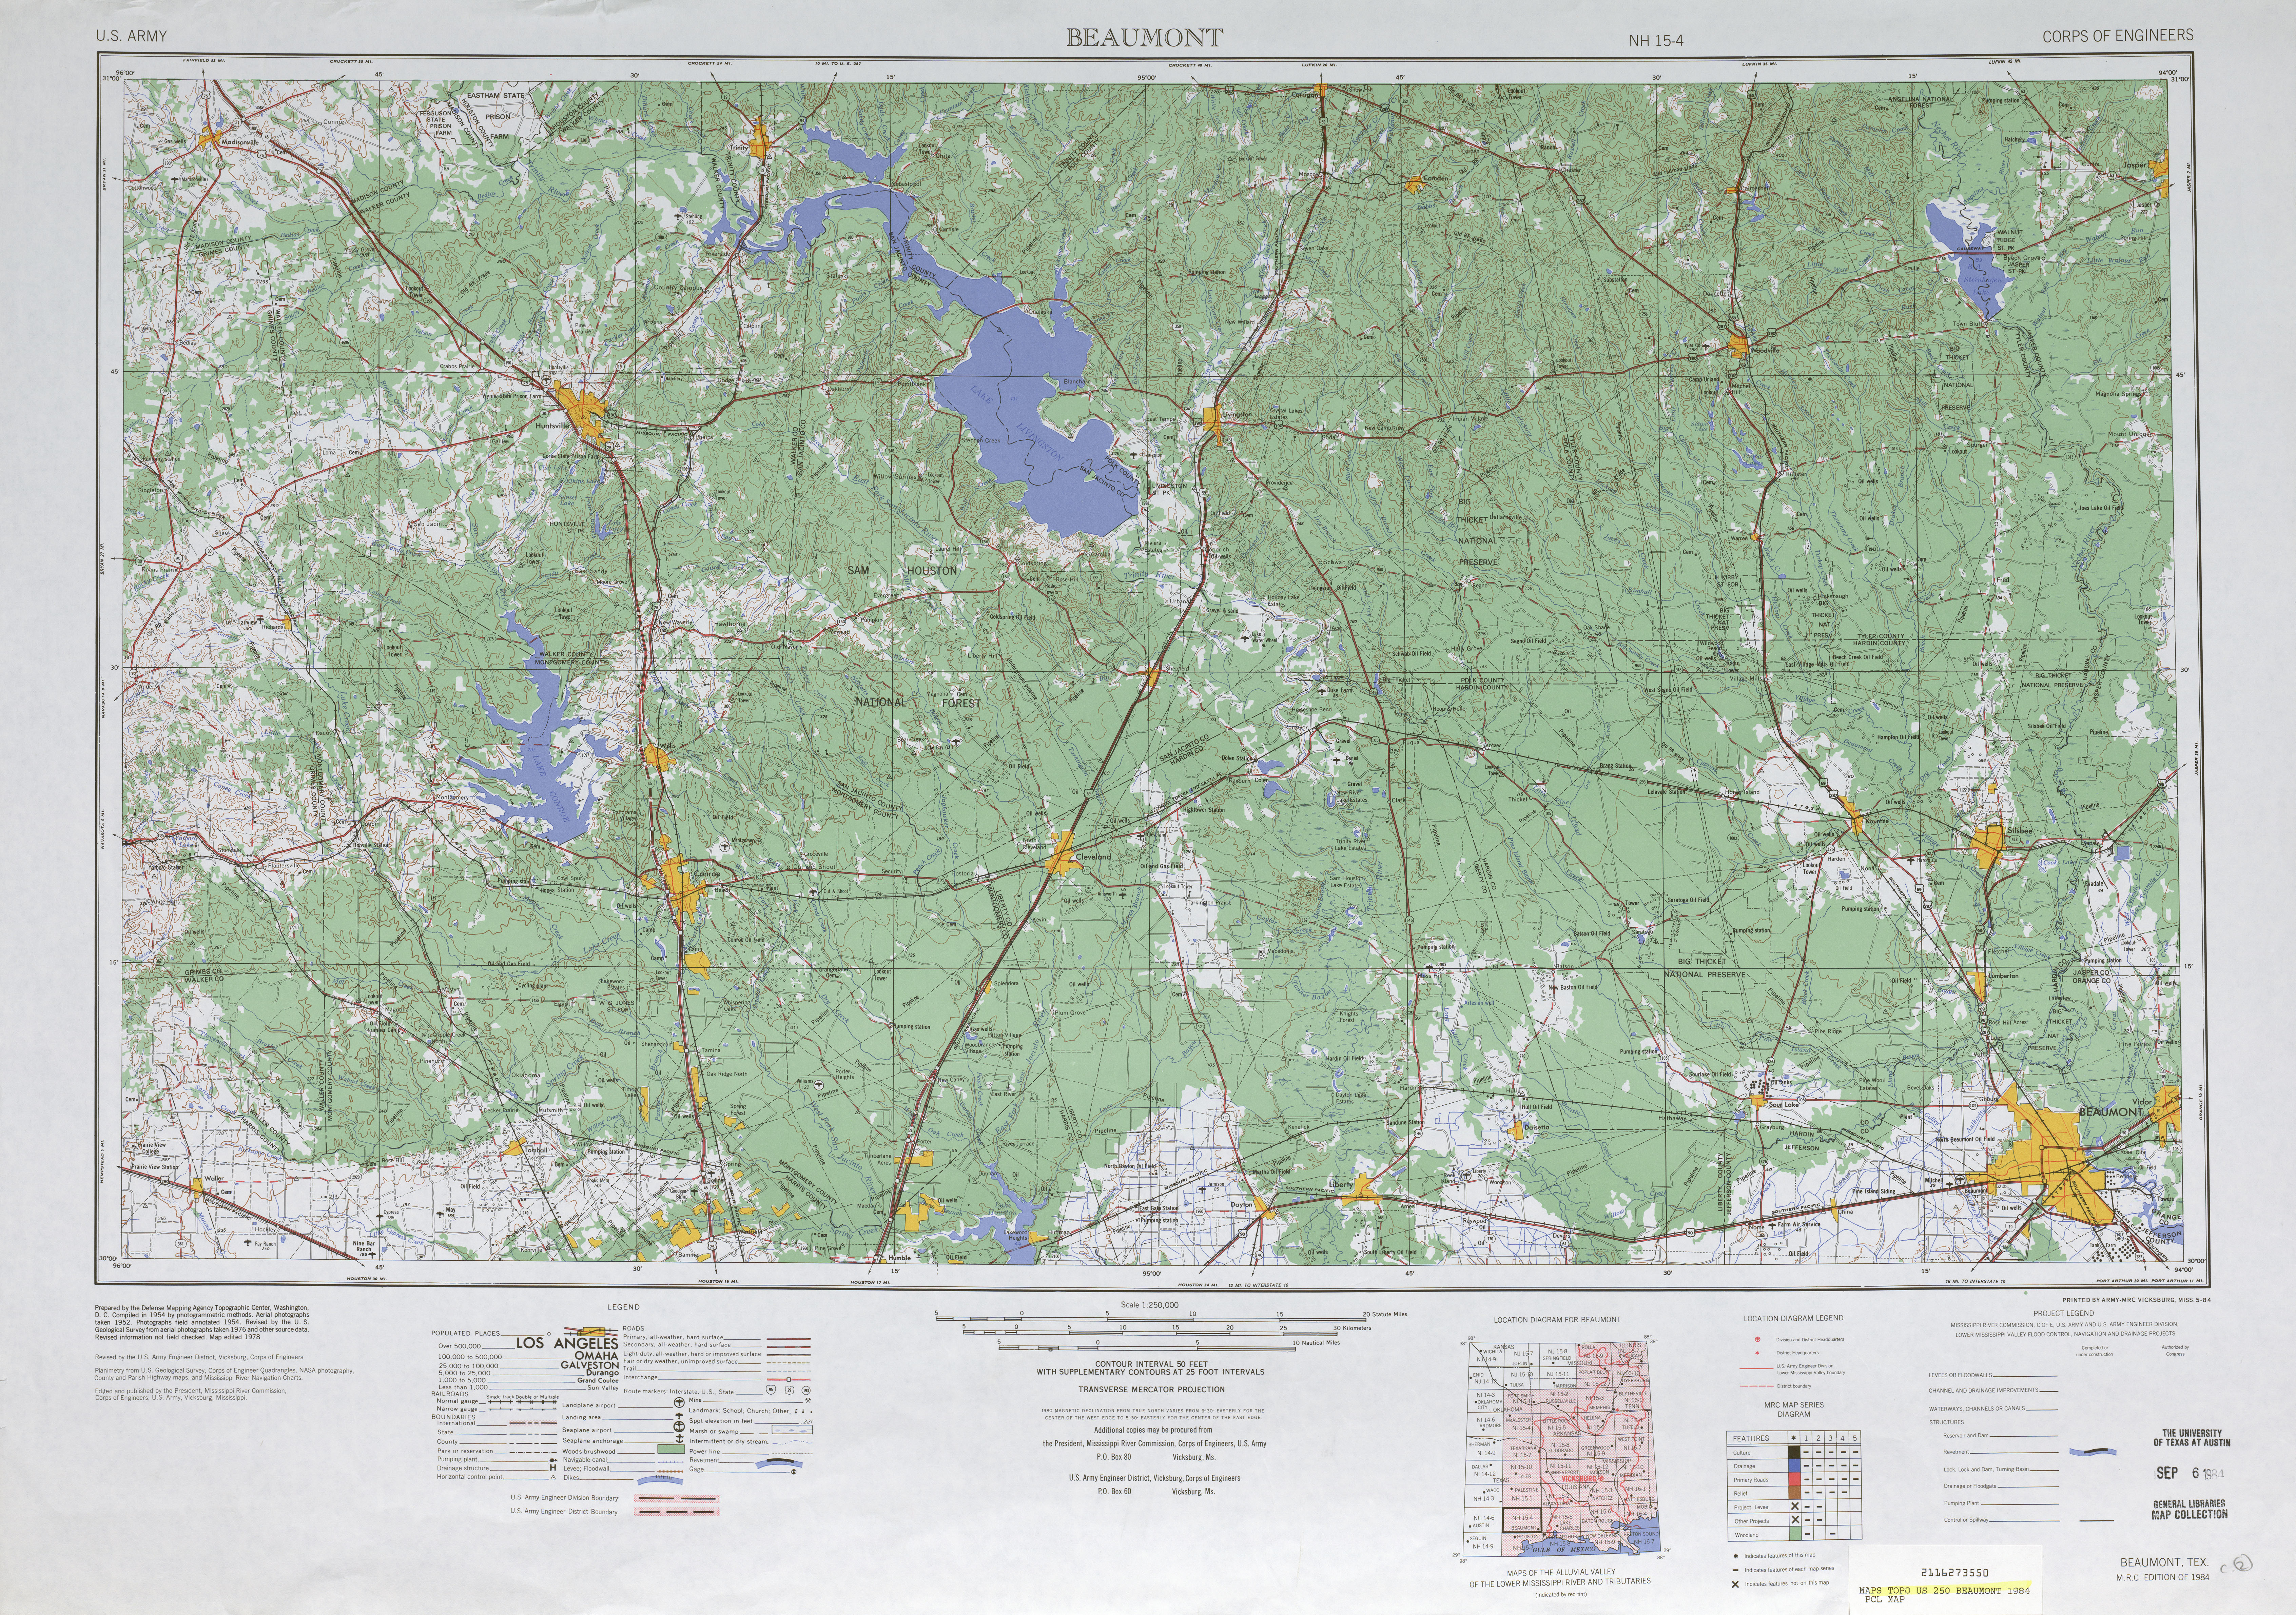 Beaumont Topographic Map Sheet, United States 1984